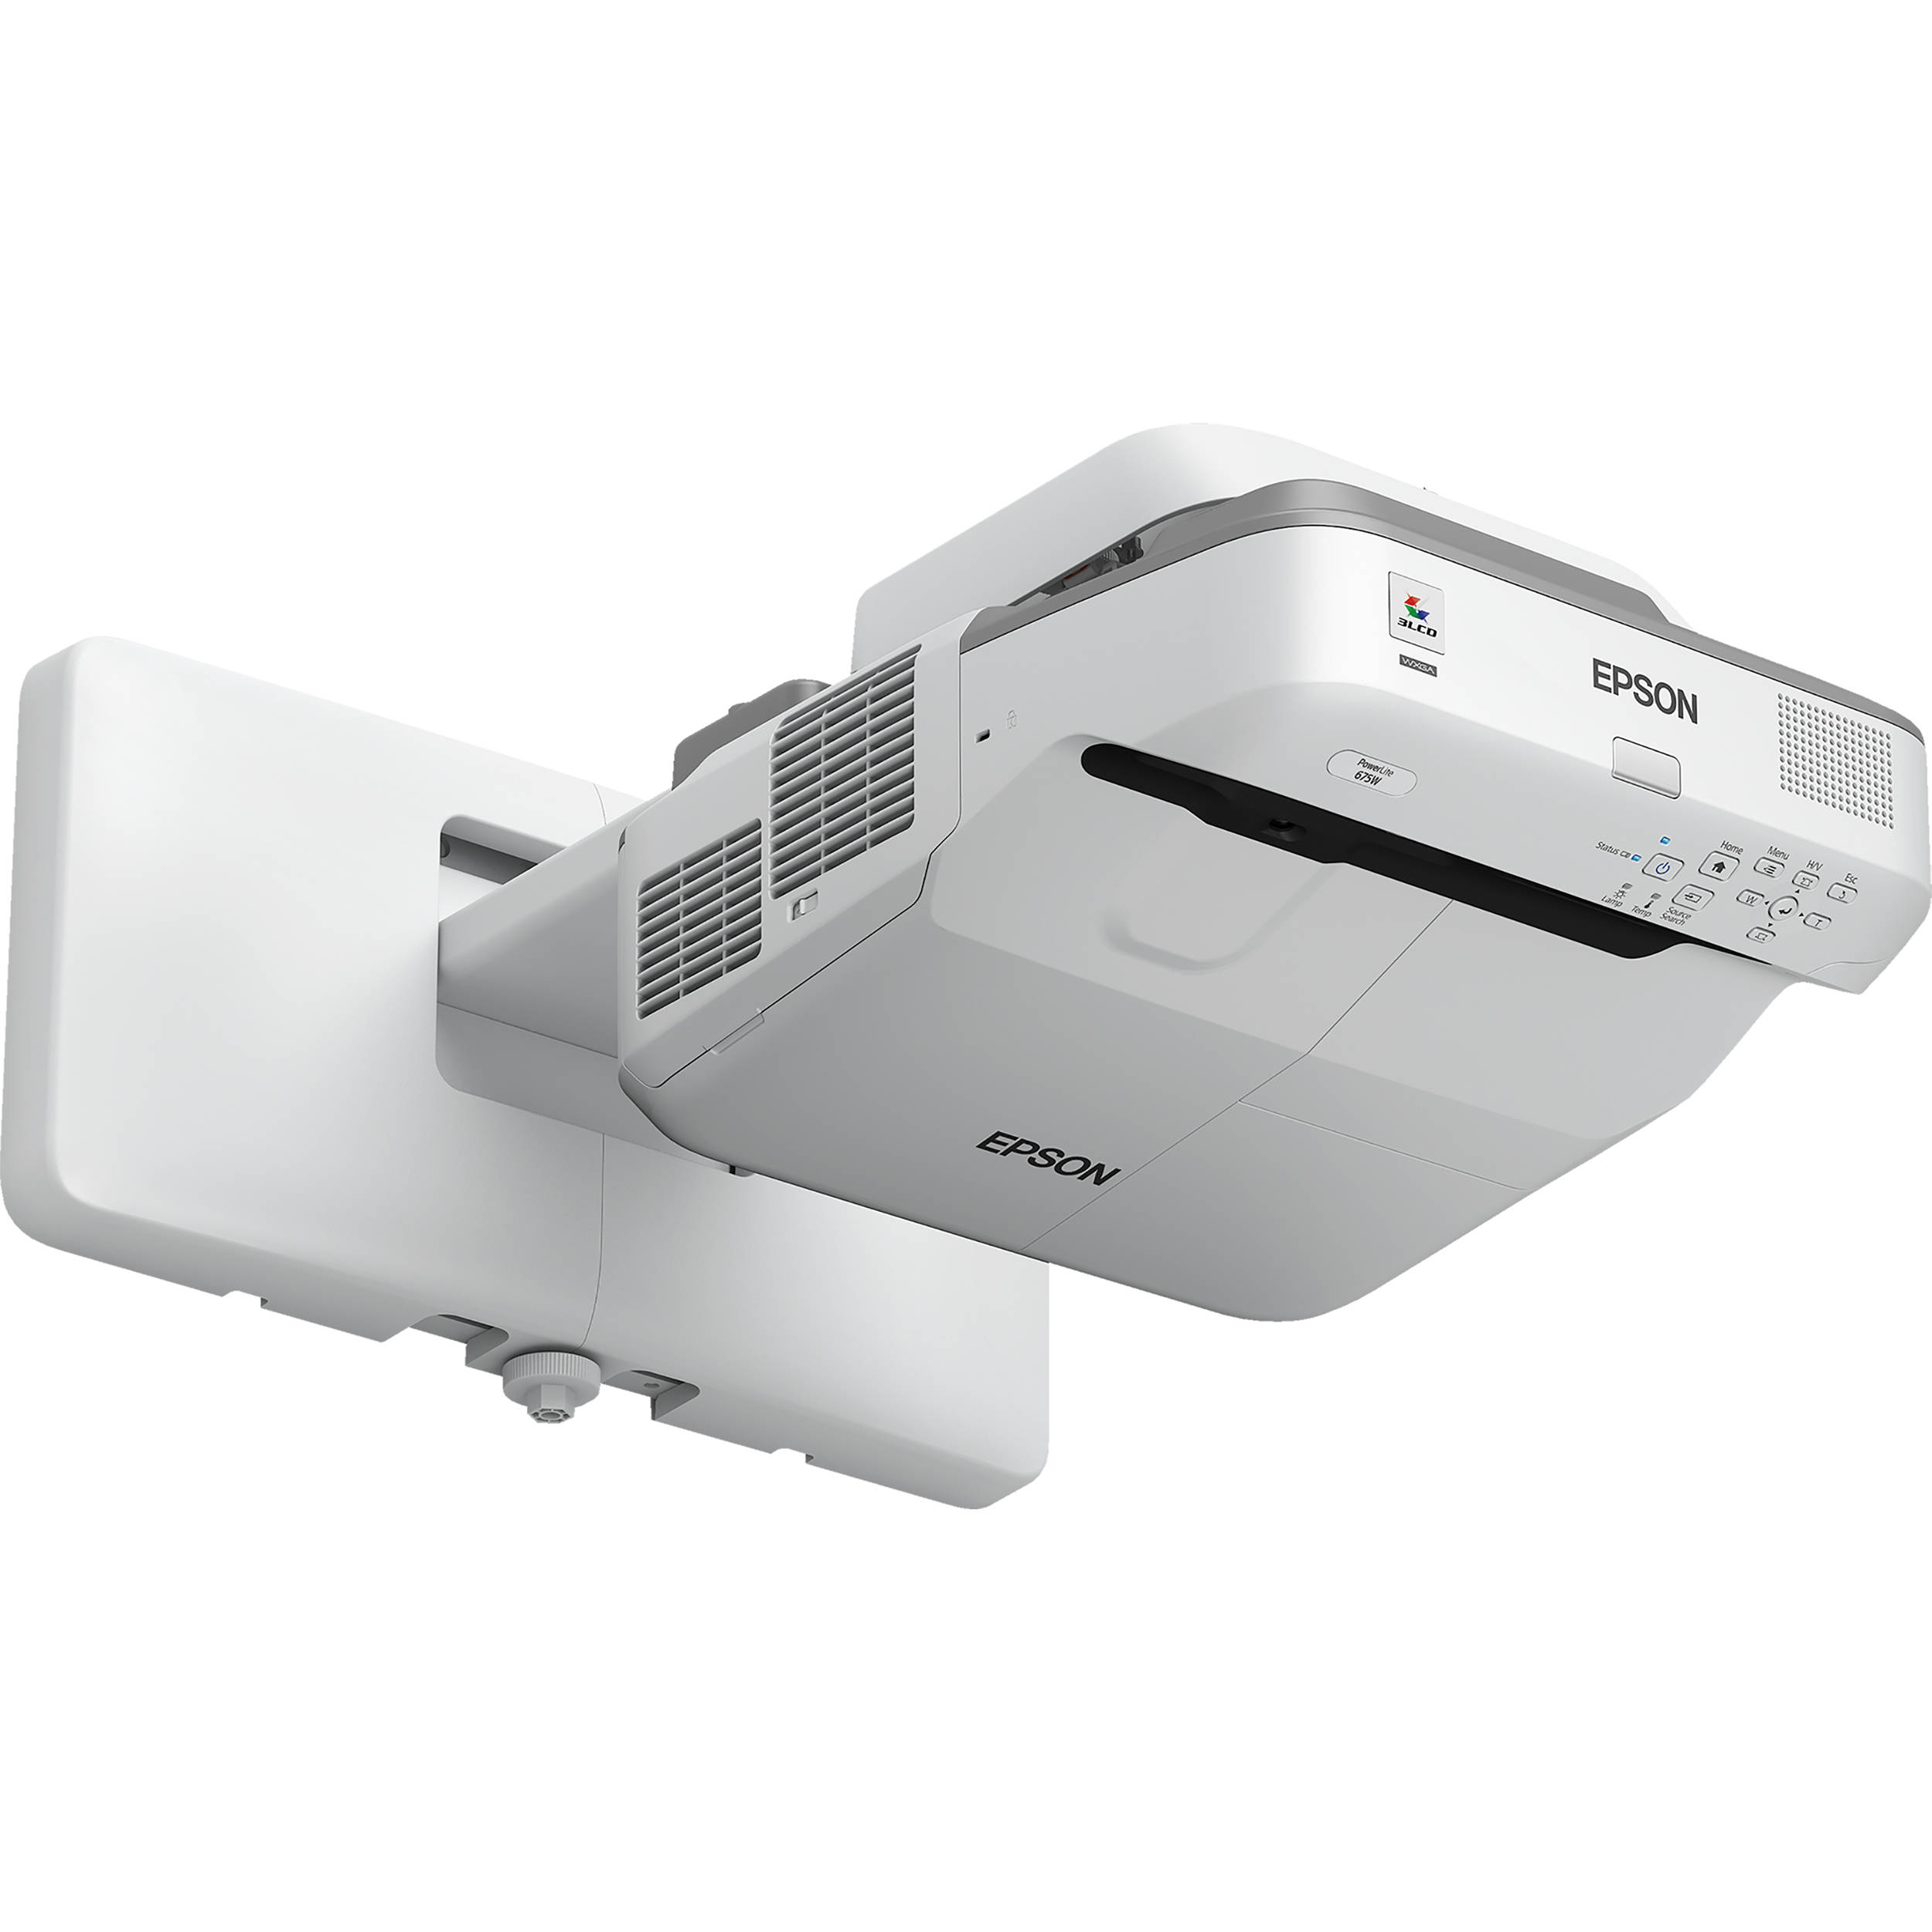 Epson Powerlite 675w 3200 Lumen Wxga Ultra Short V11h745520 Bh Eb W31 Projector Mount Not Included